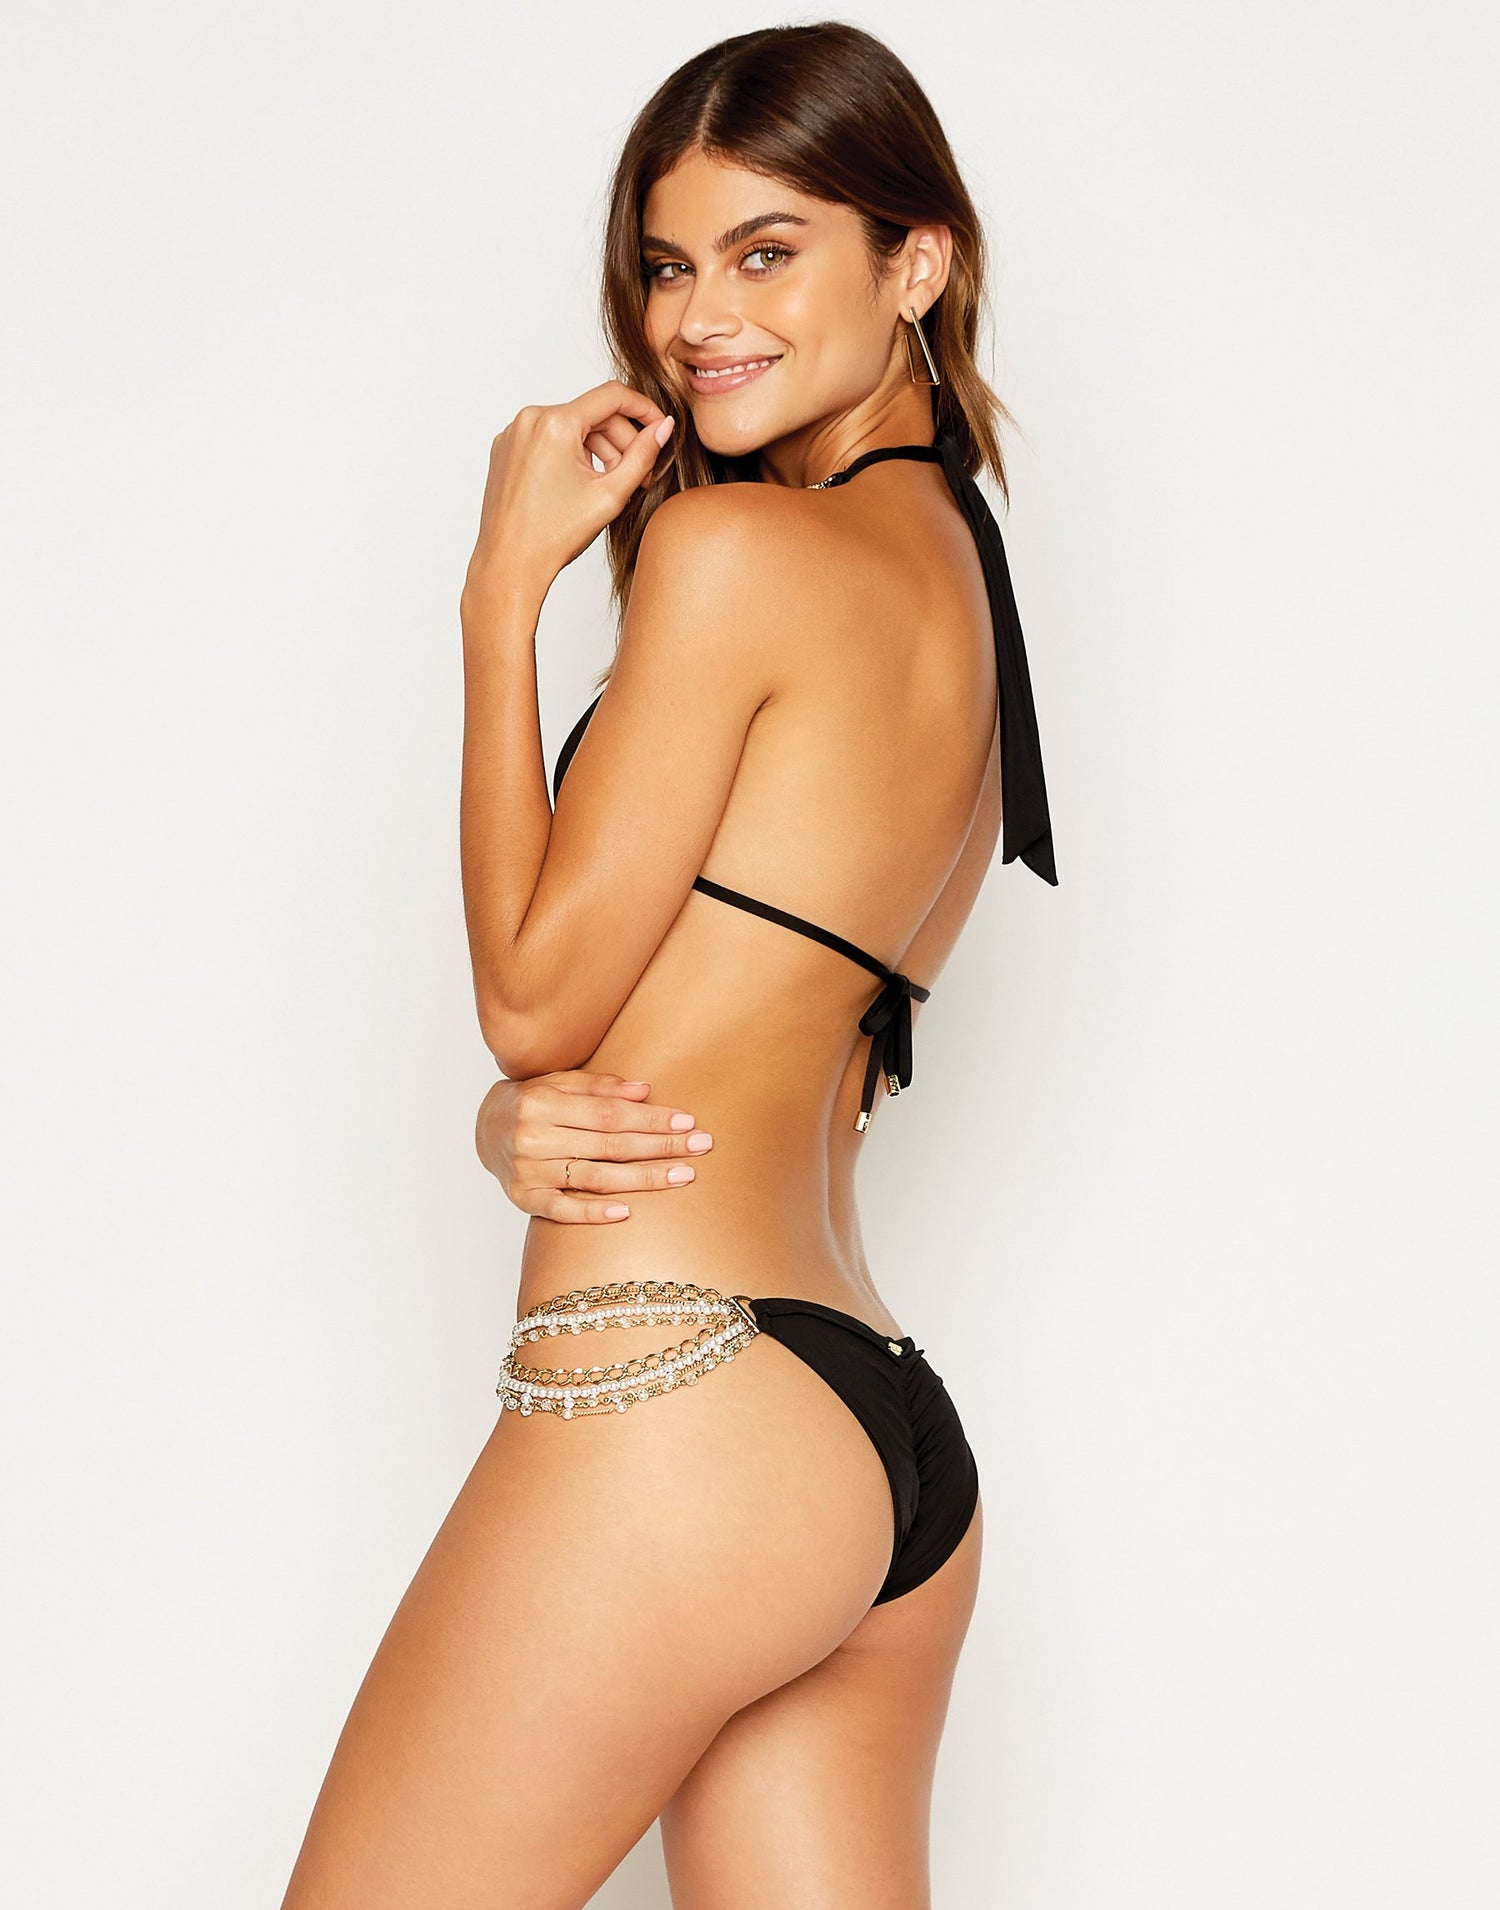 Pretty in Pearls Triangle Bikini Top in Black - side view